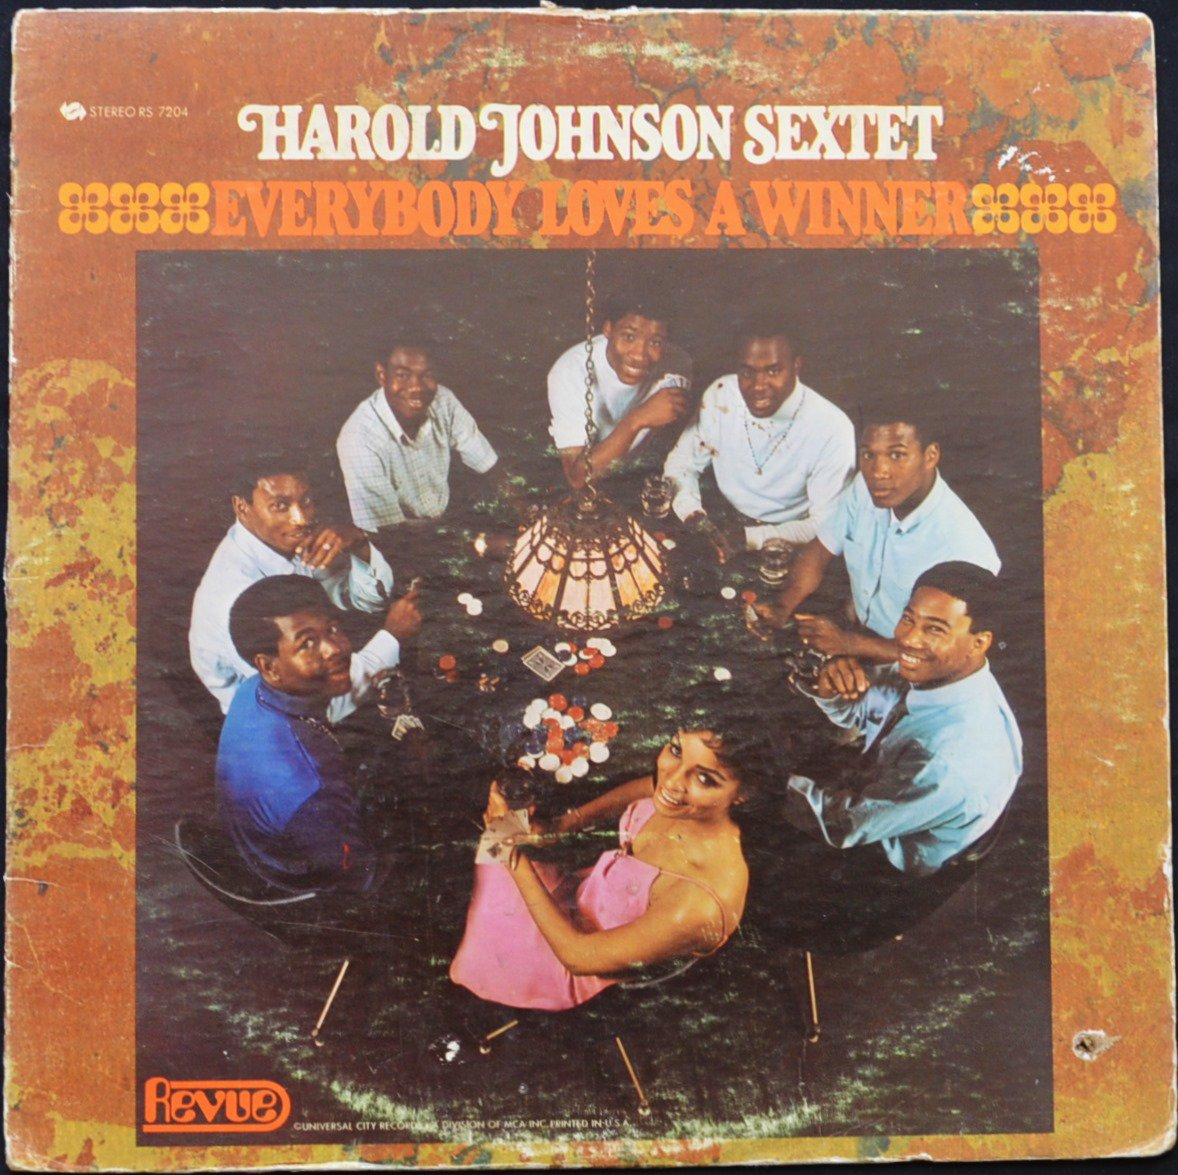 HAROLD JOHNSON SEXTET ‎/ EVERYBODY LOVES A WINNER (LP)